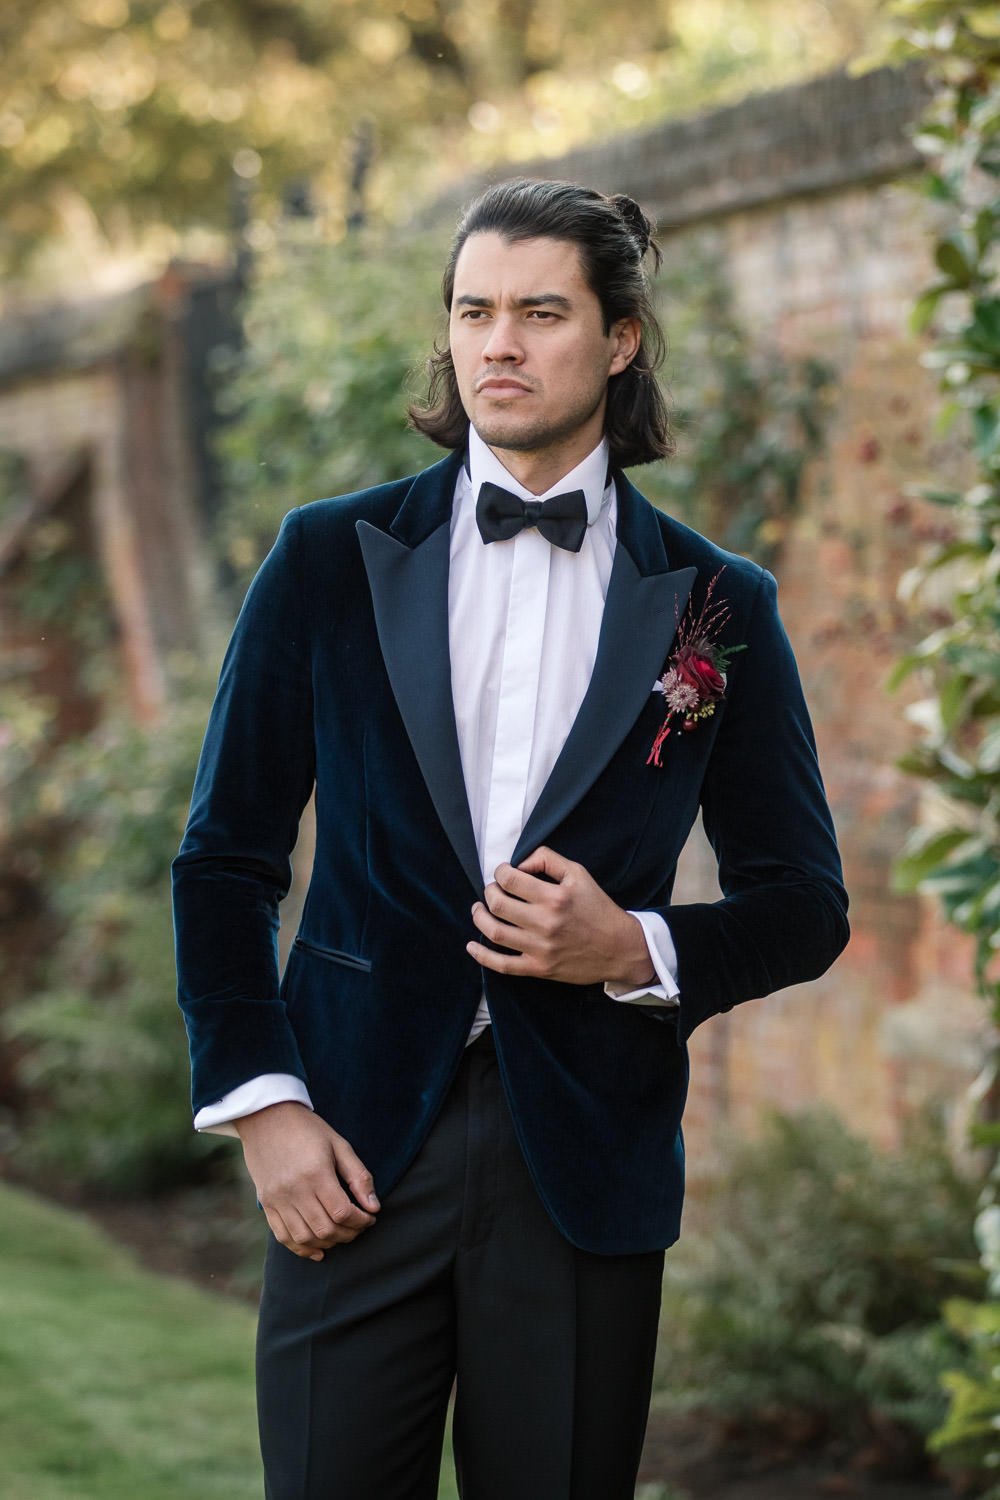 Groom Suit Velvet Jacket Bow Tie Winter Luxe Wedding Ideas Becky Harley Photography